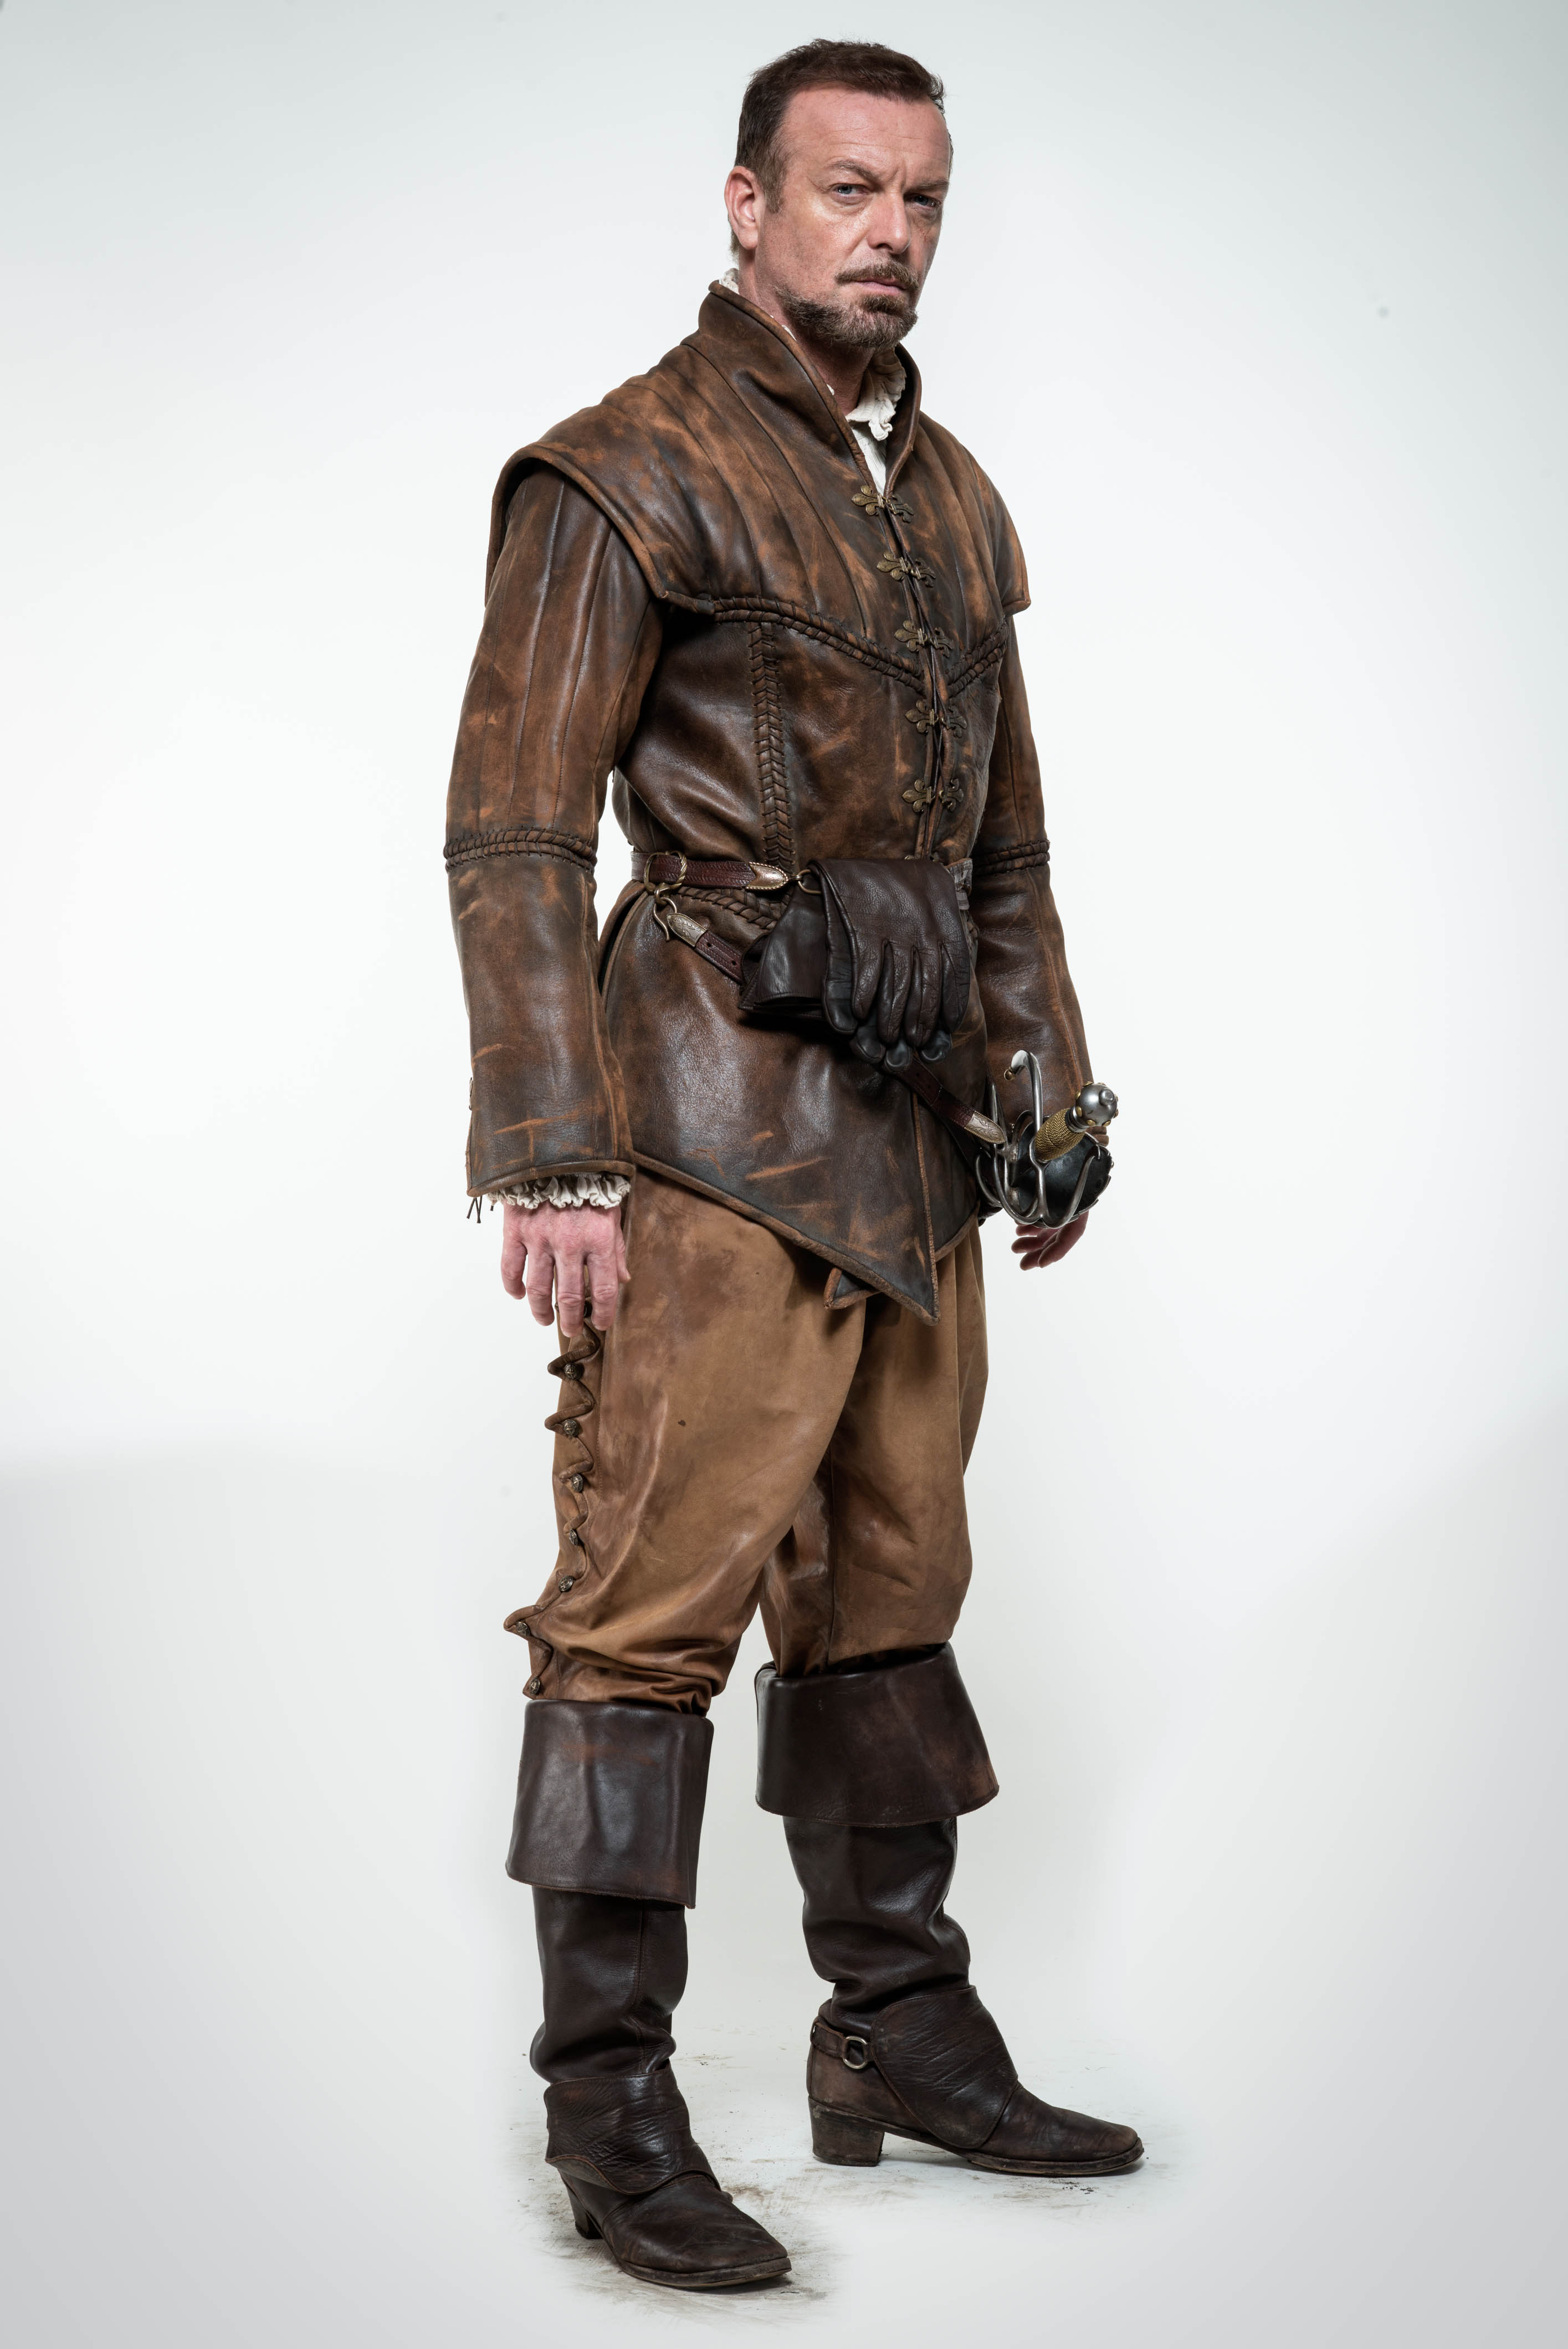 The Musketeers - Season 2 - Cast 写真 - Captain Treville